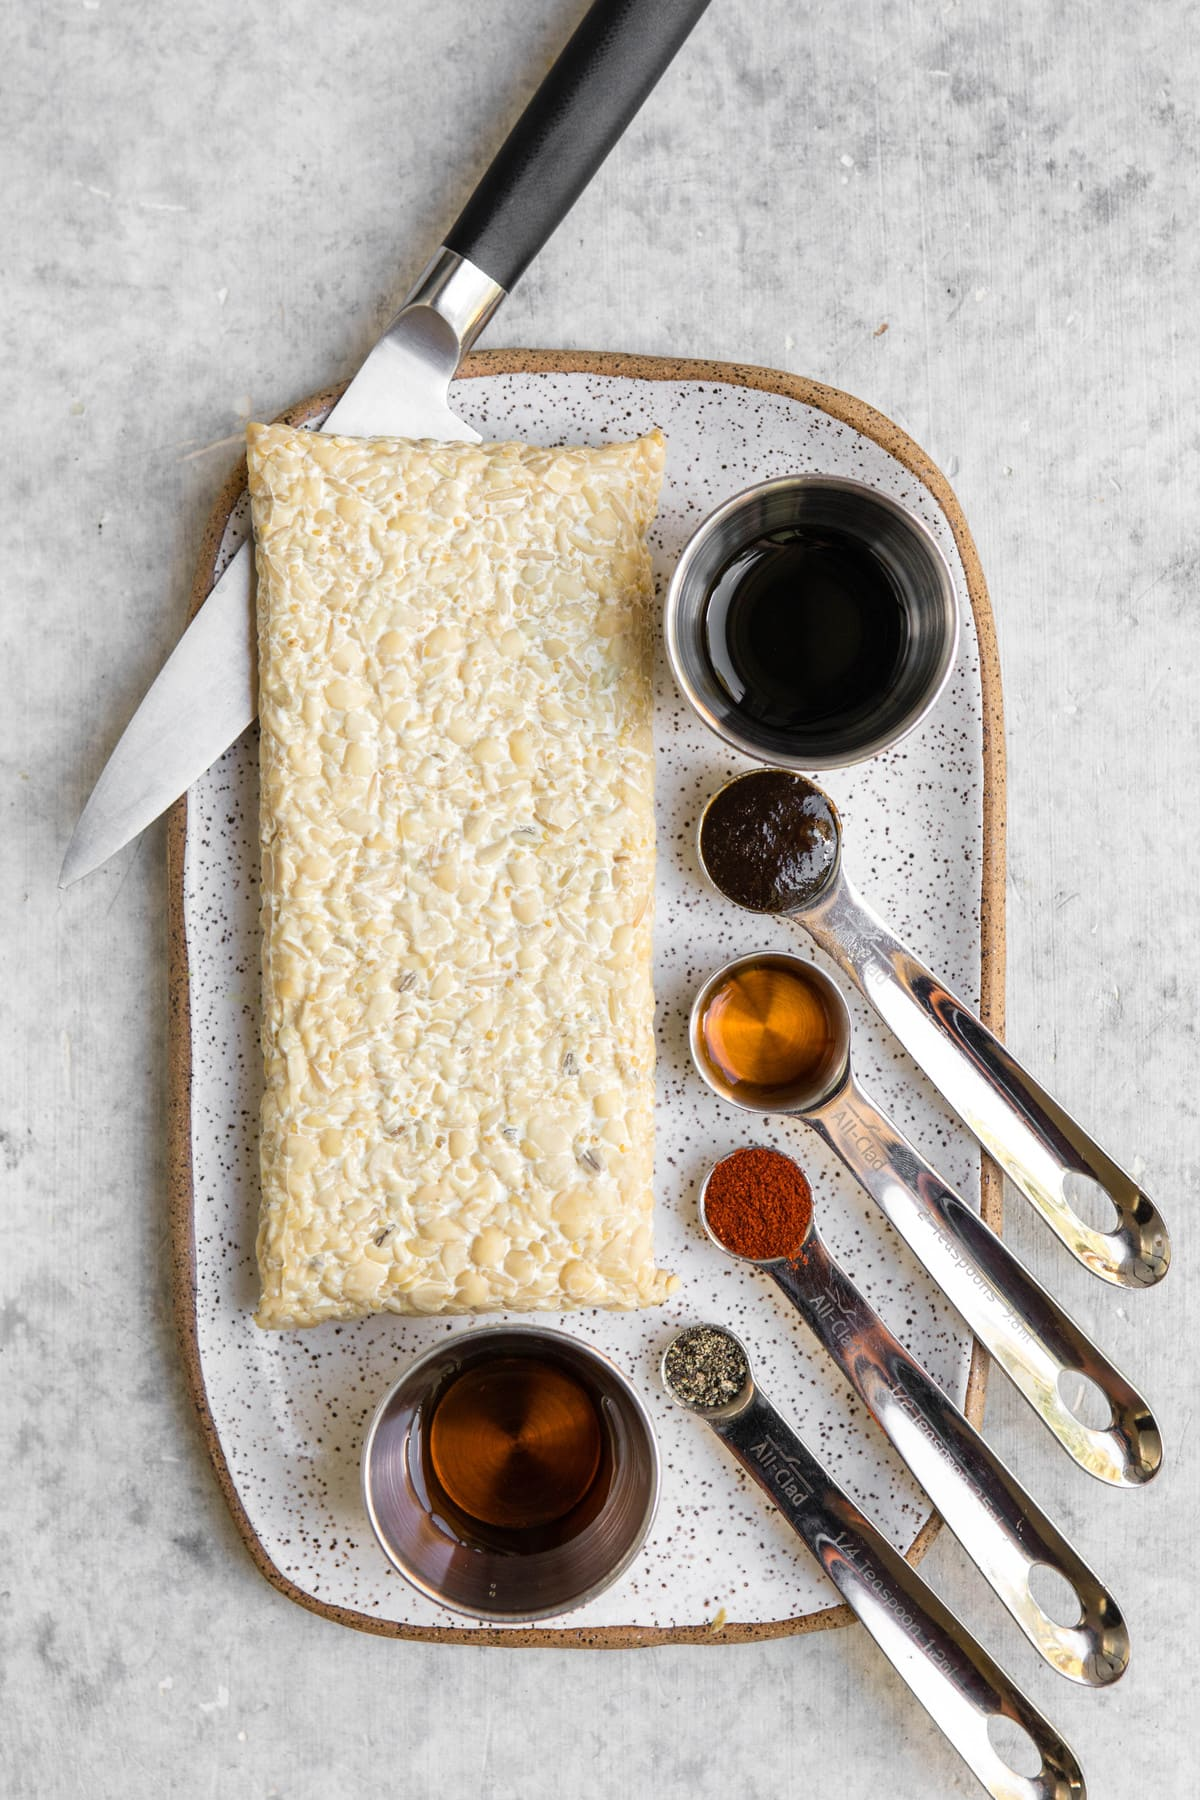 ingredients for smoky tempeh and block of tempeh on white serving tray